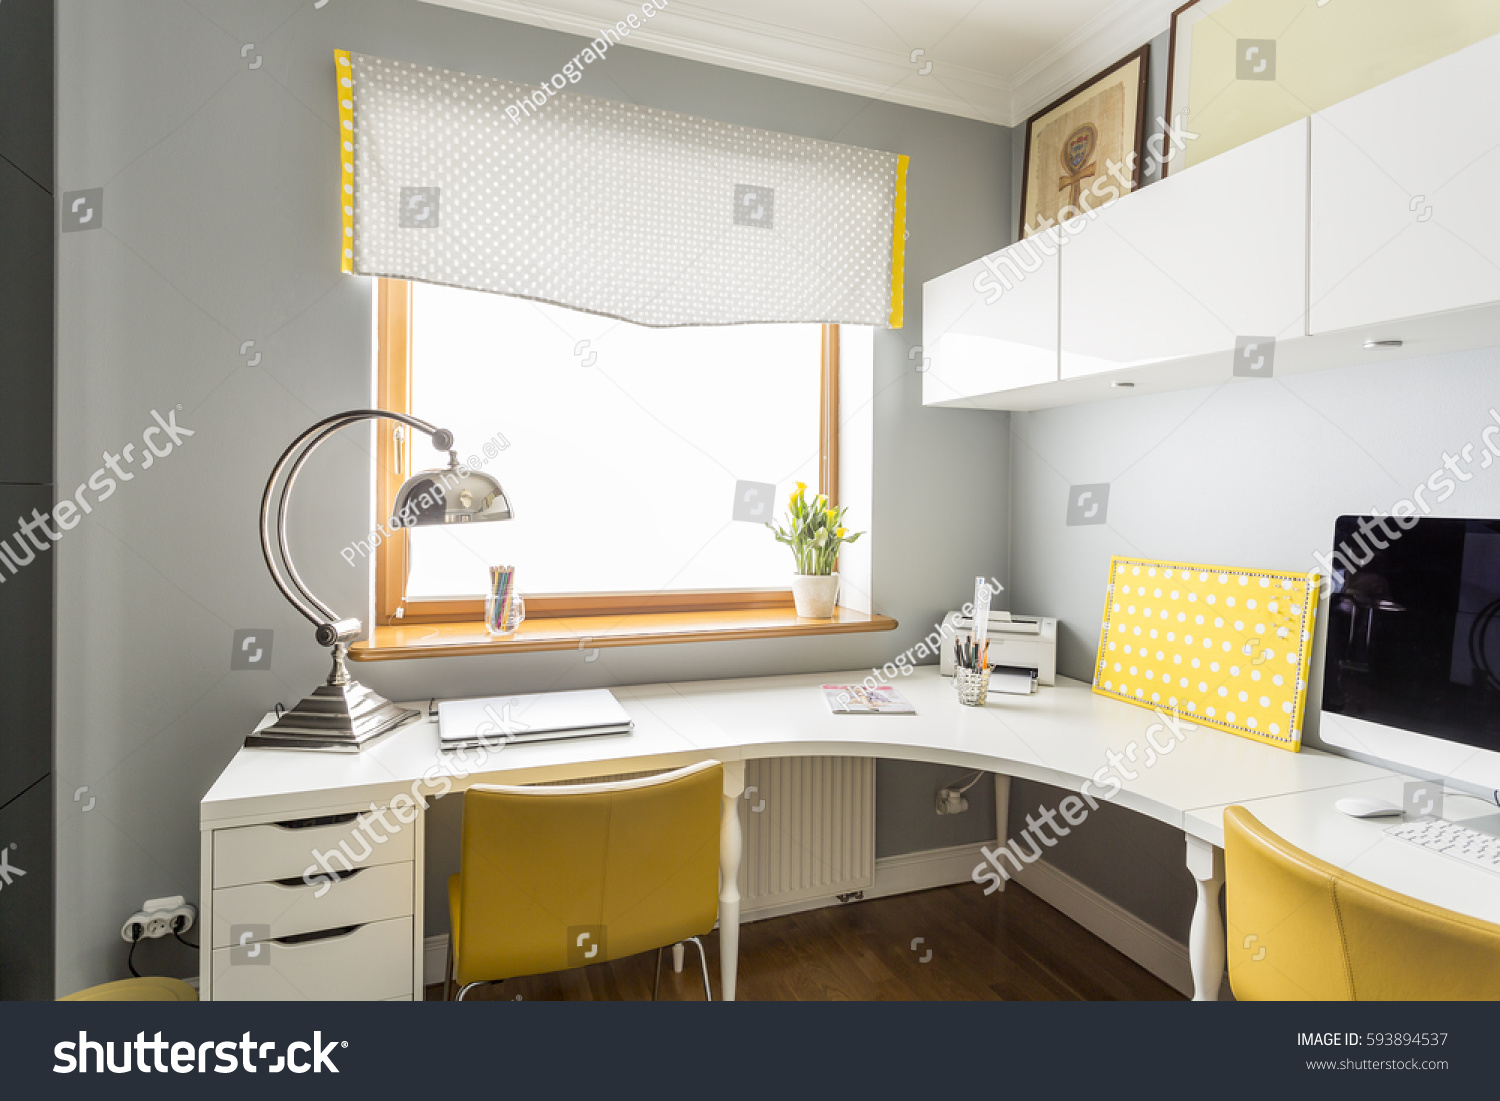 Large, Angular Desk And Hanging Cabinets In An Office Interior In White And  Yellow